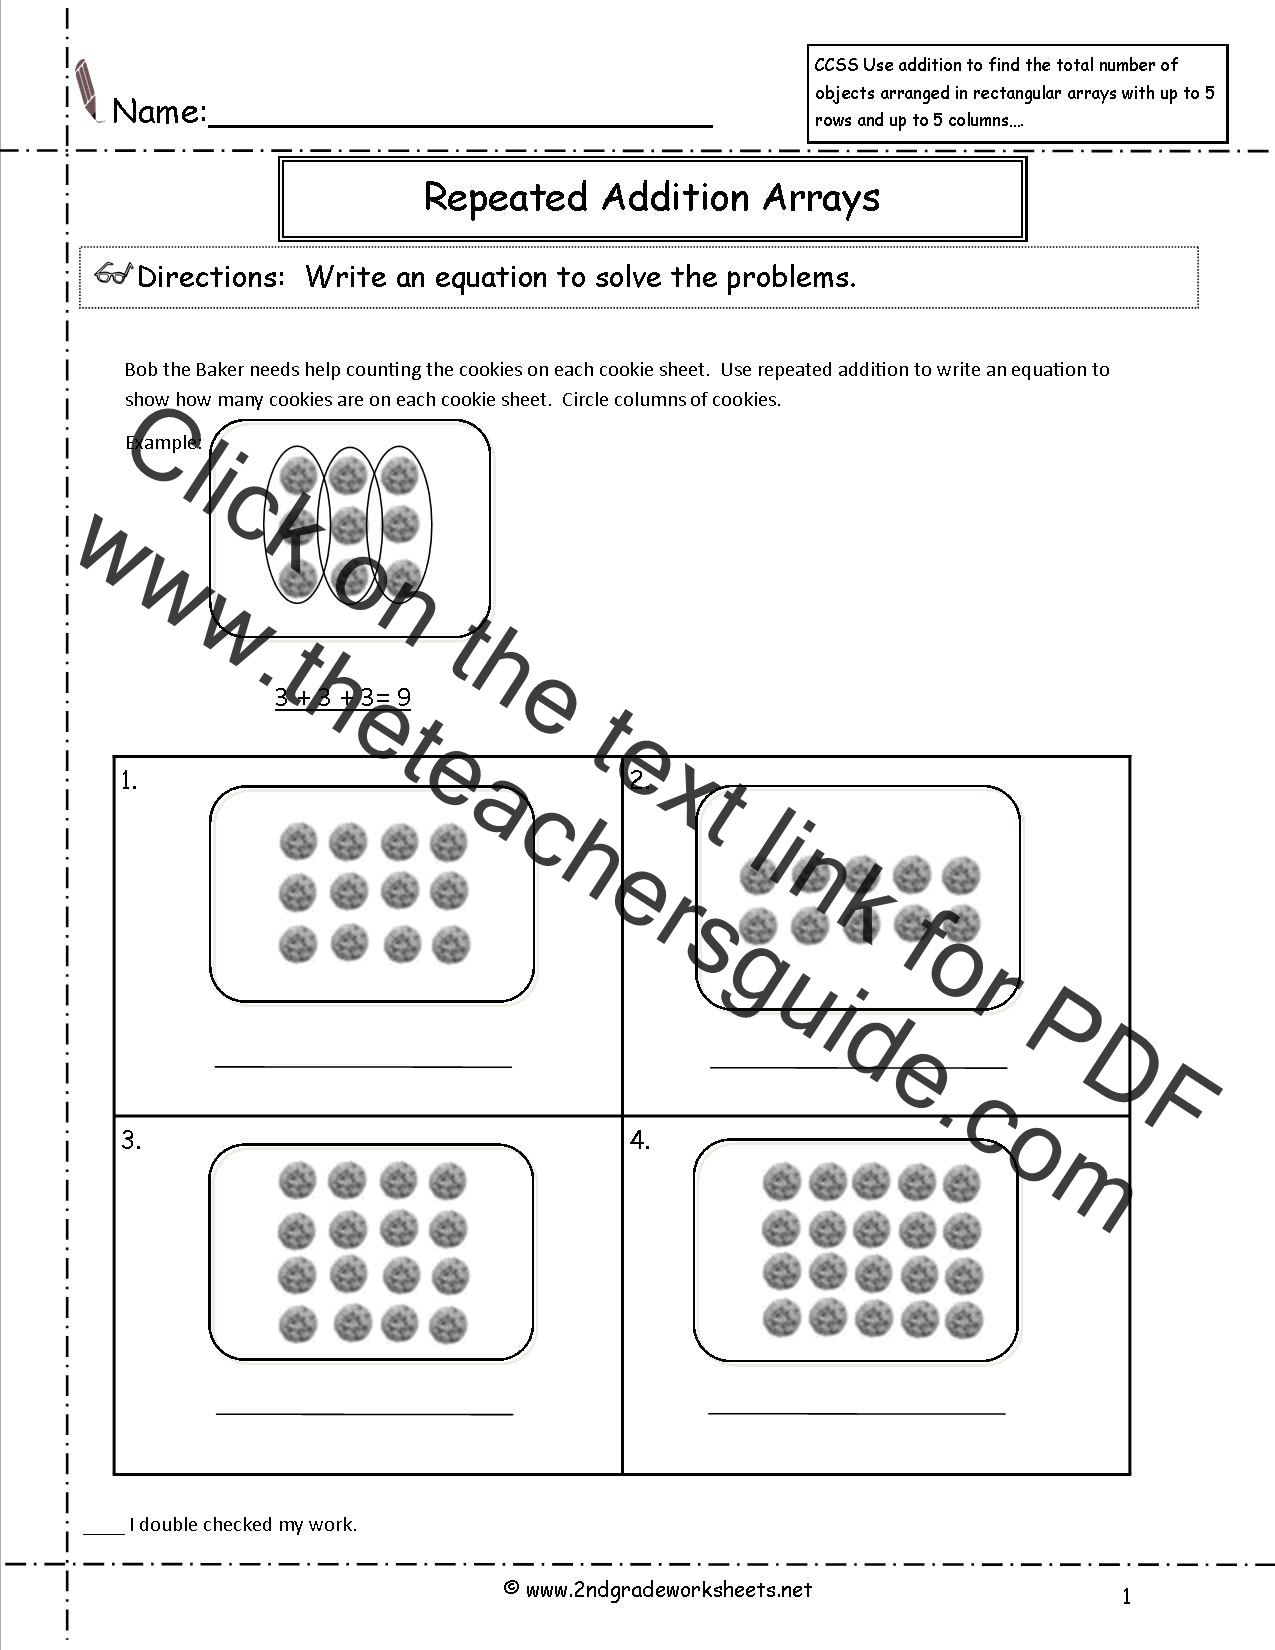 Worksheets Second Grade Common Core Math Worksheets 2nd grade math common core state standards worksheets ccss 2 oa 4 worksheets